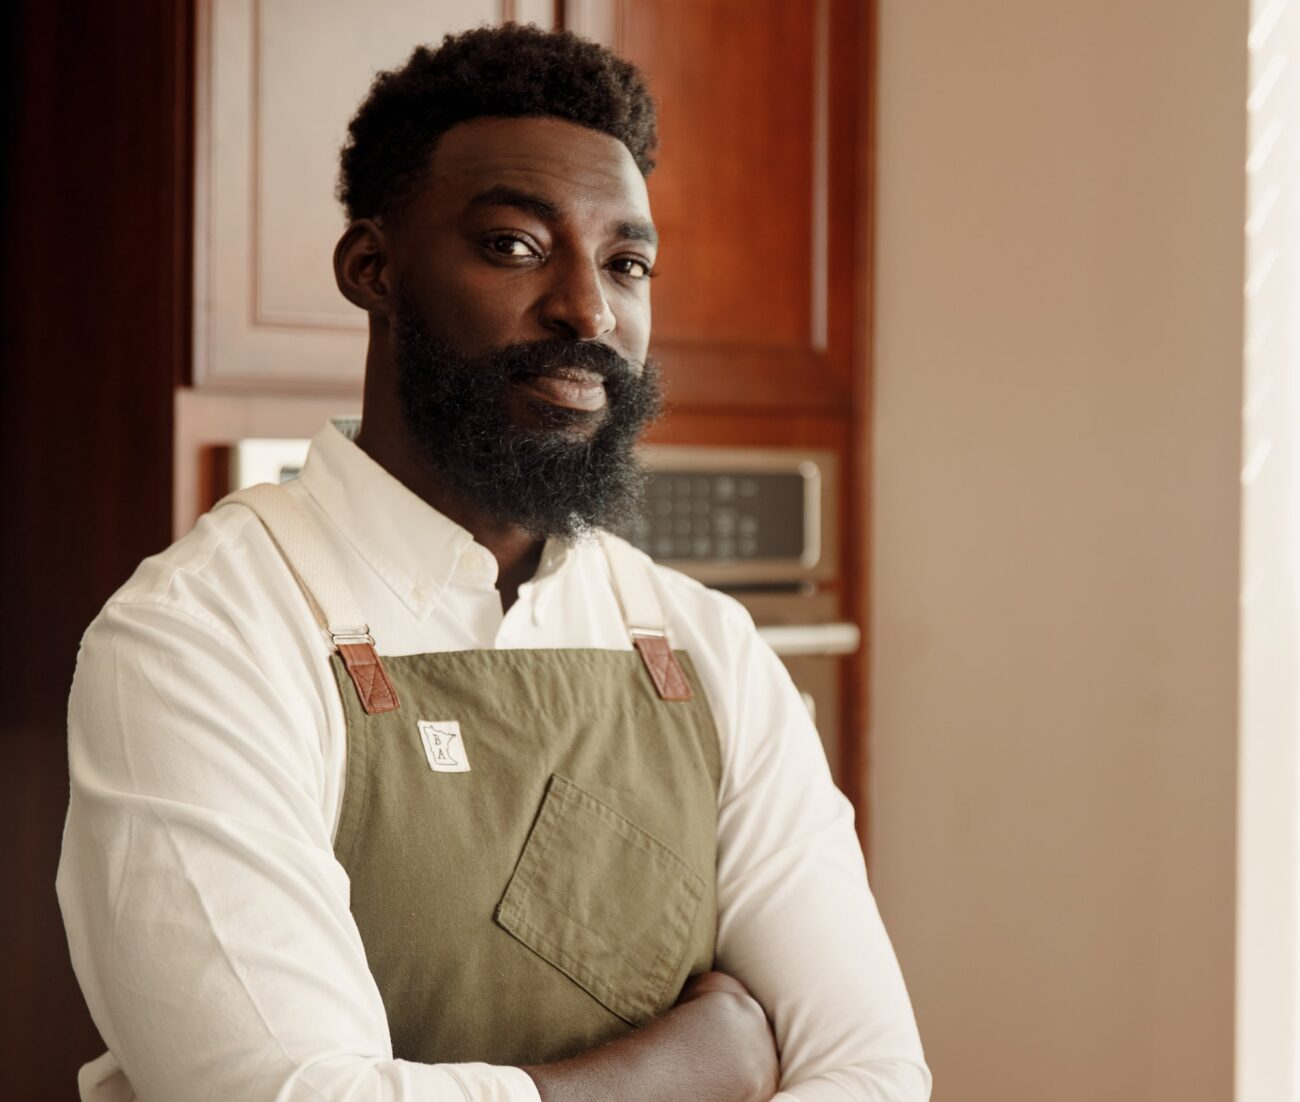 'Top Chef' favorite Eric Adjepong is partnering with AYO Foods for a delicious new project. Make your next dinner a winner with these West African dishes.